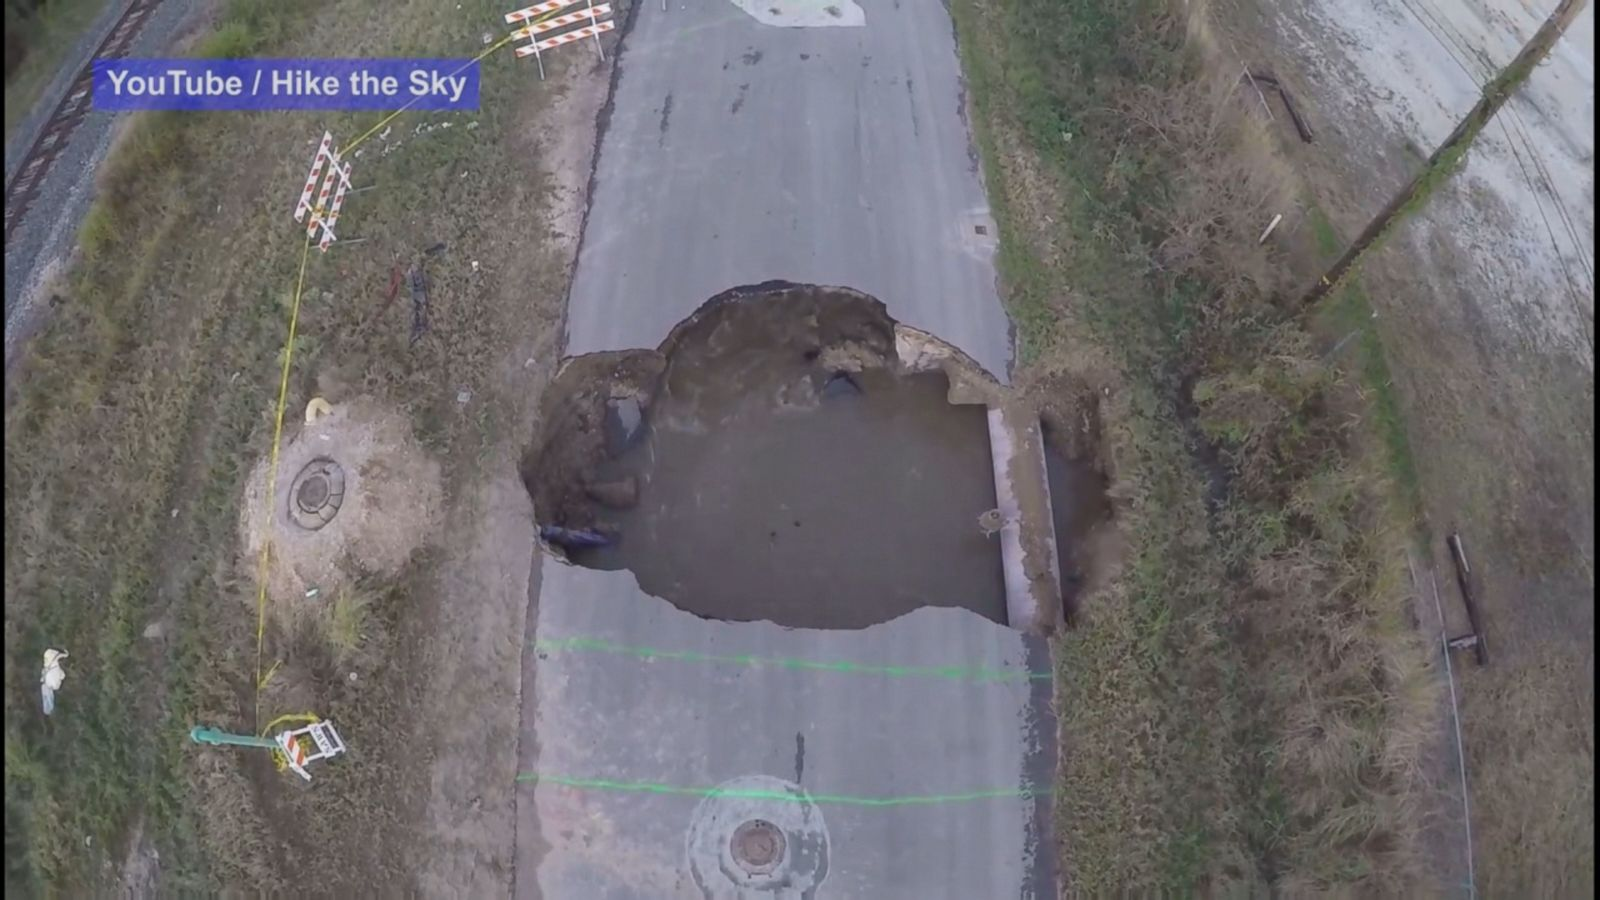 Drone footage captures an aerial view of the sinkhole in San Antonio, Texas that swallowed two cars and claimed the life of a sheriff's deputy.